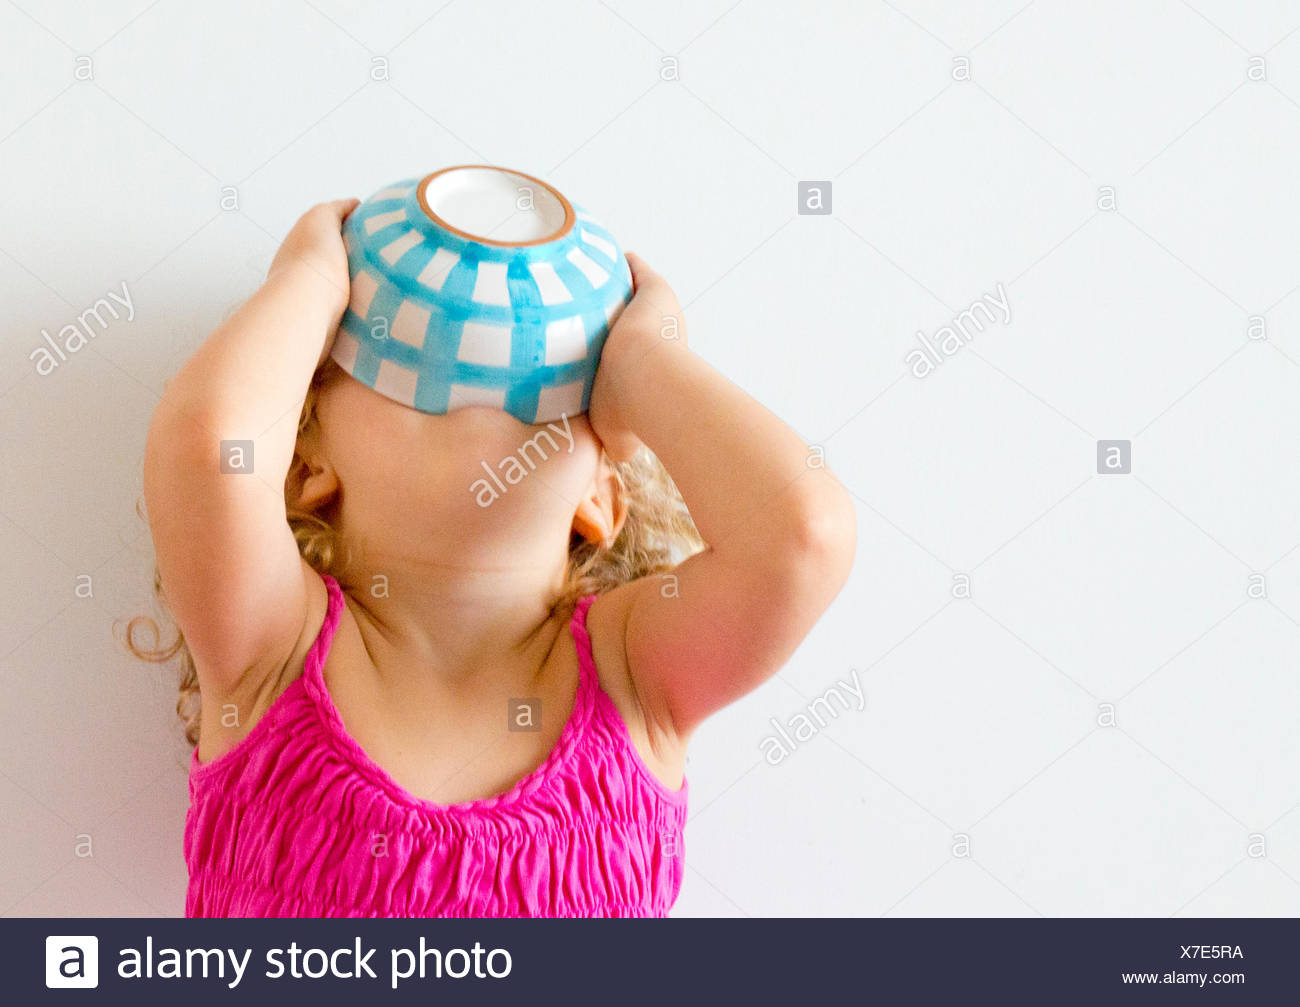 Girl with head back holding cereal bowl to her mouth - Stock Image